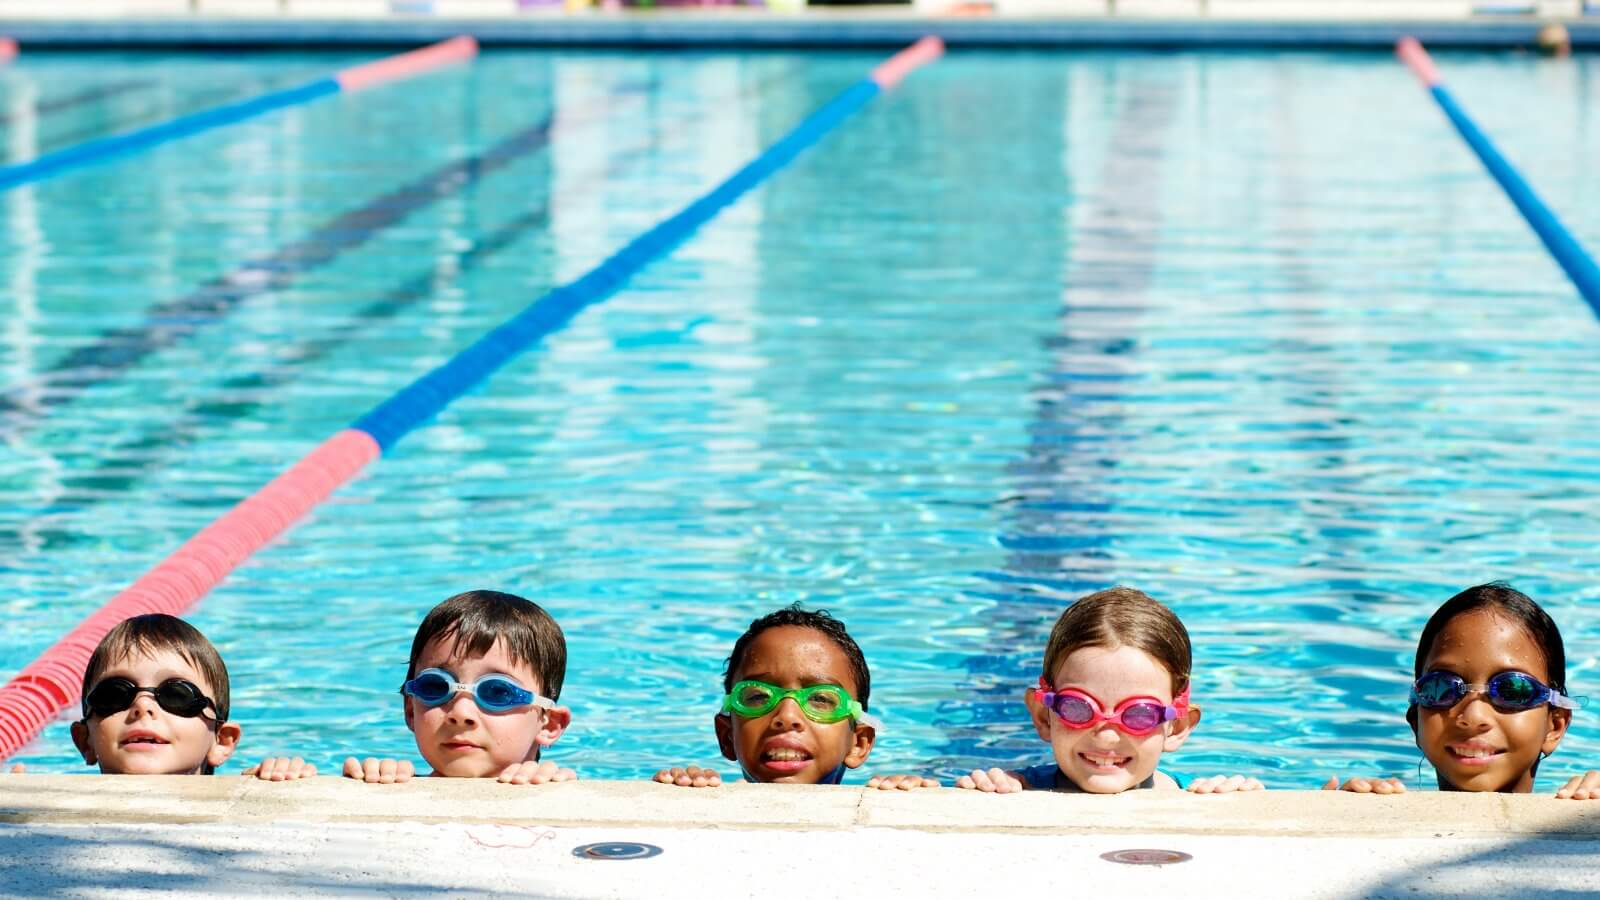 kids-in-swimming-pool-wallpaper-21